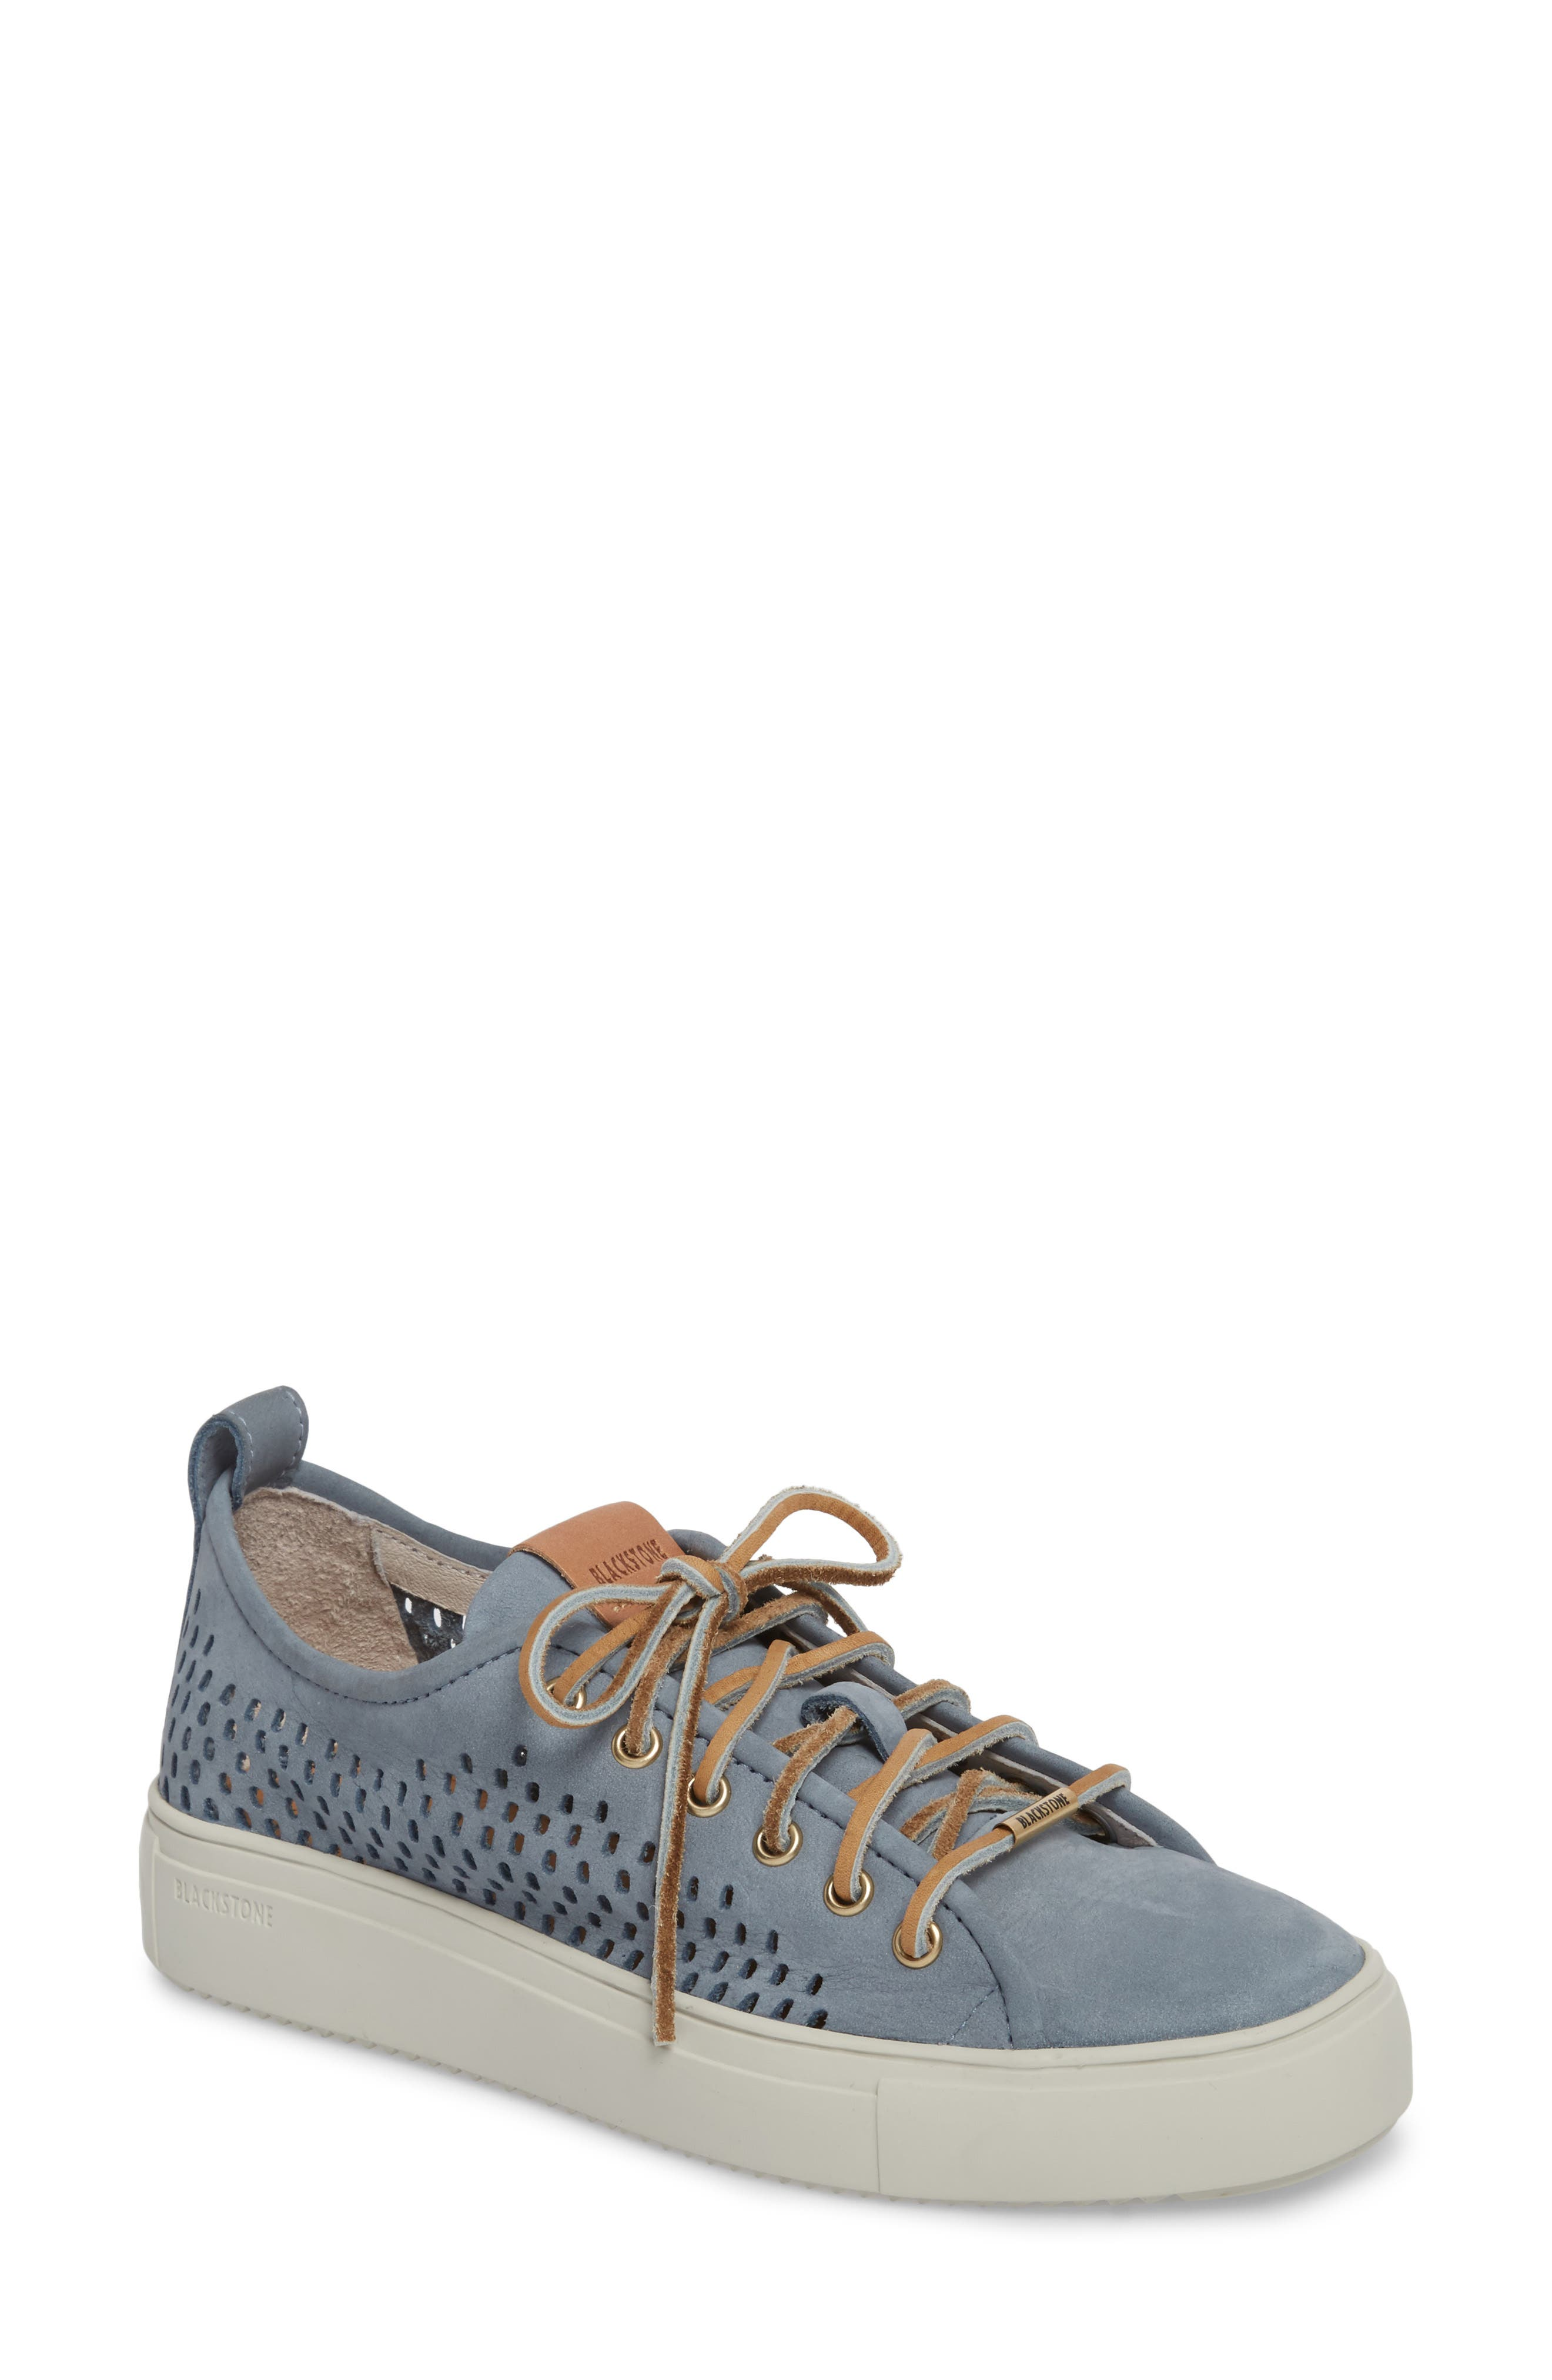 PL87 Sneaker,                             Main thumbnail 1, color,                             Winter Sky Leather